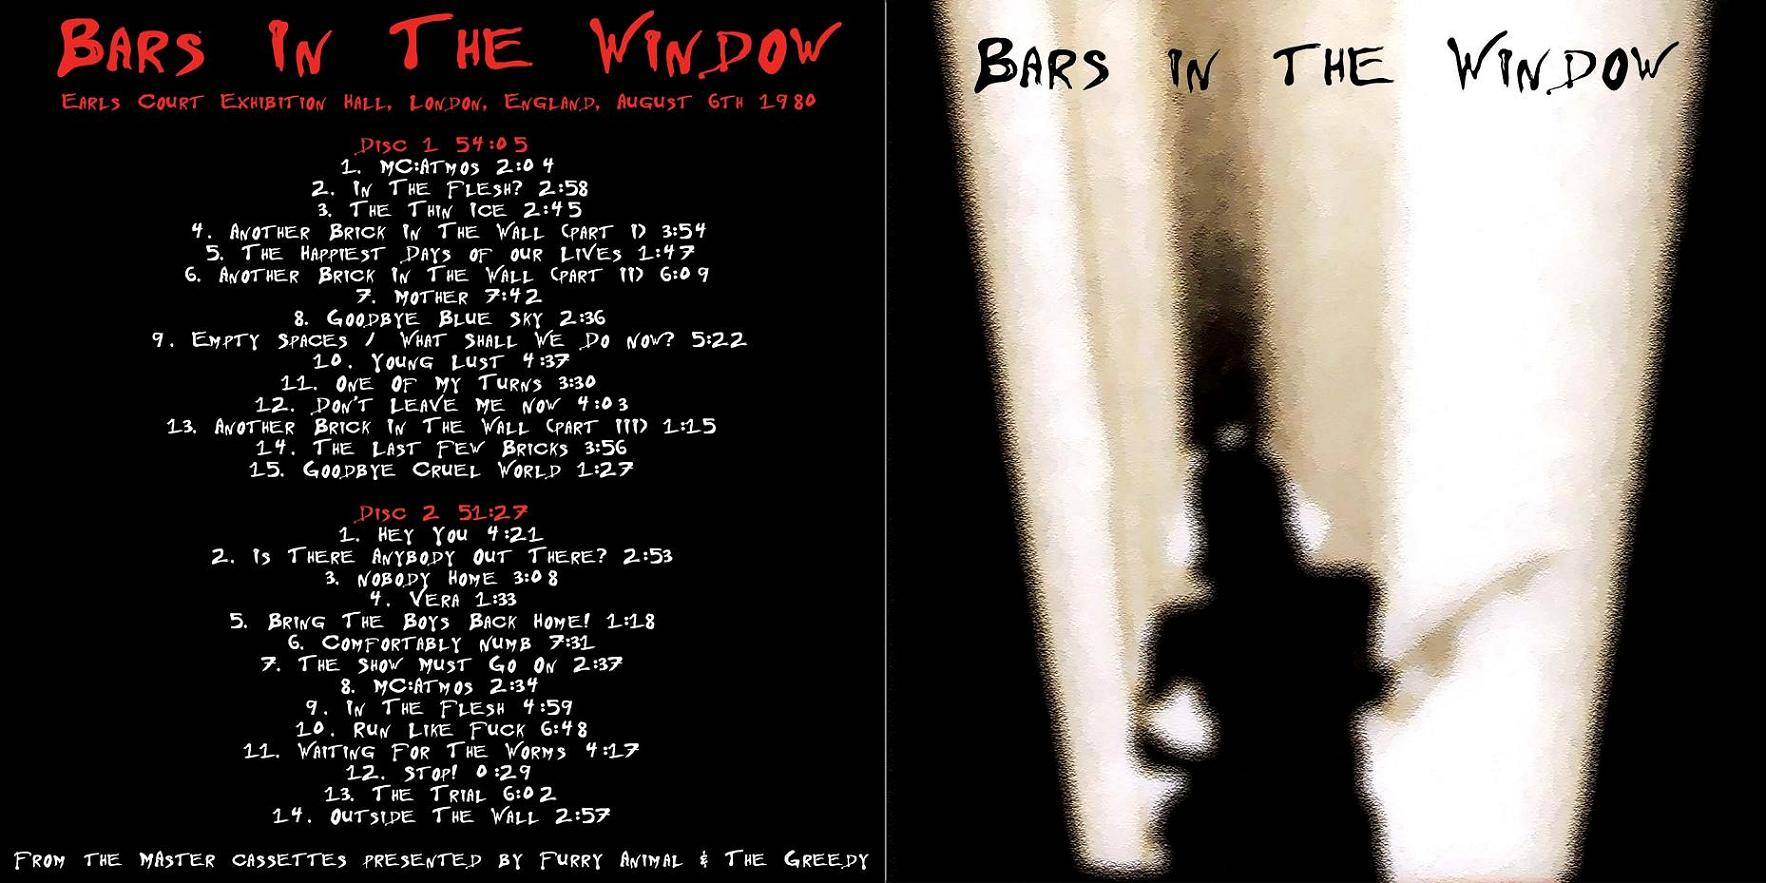 1980-08-06-Bars_in_the_window-front